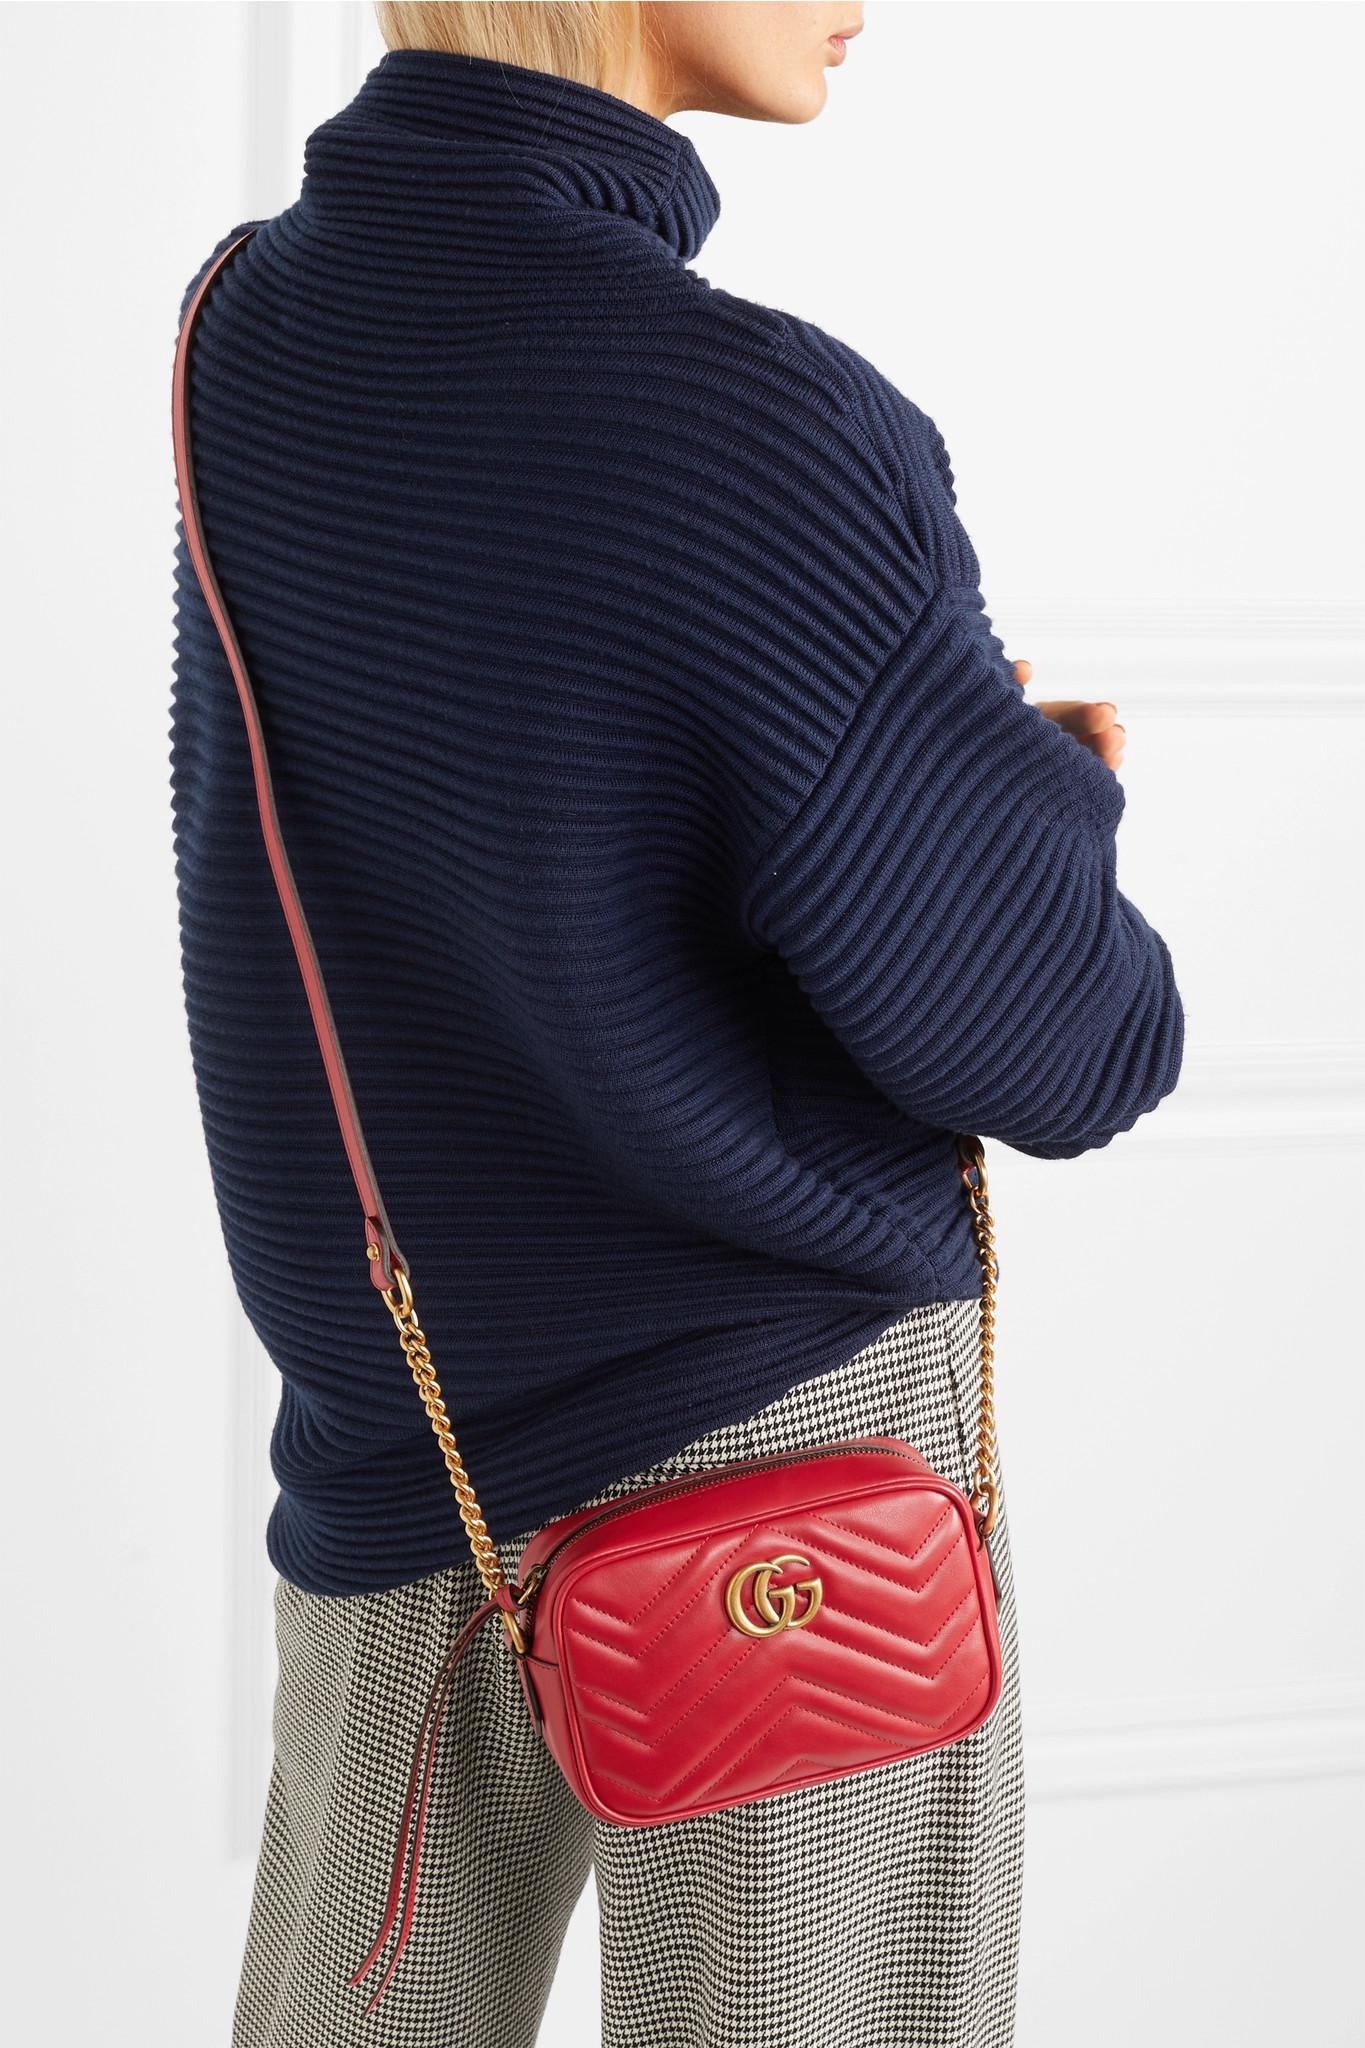 7765b7a43 Gucci Gg Marmont Camera Mini Quilted Leather Shoulder Bag in Red - Lyst